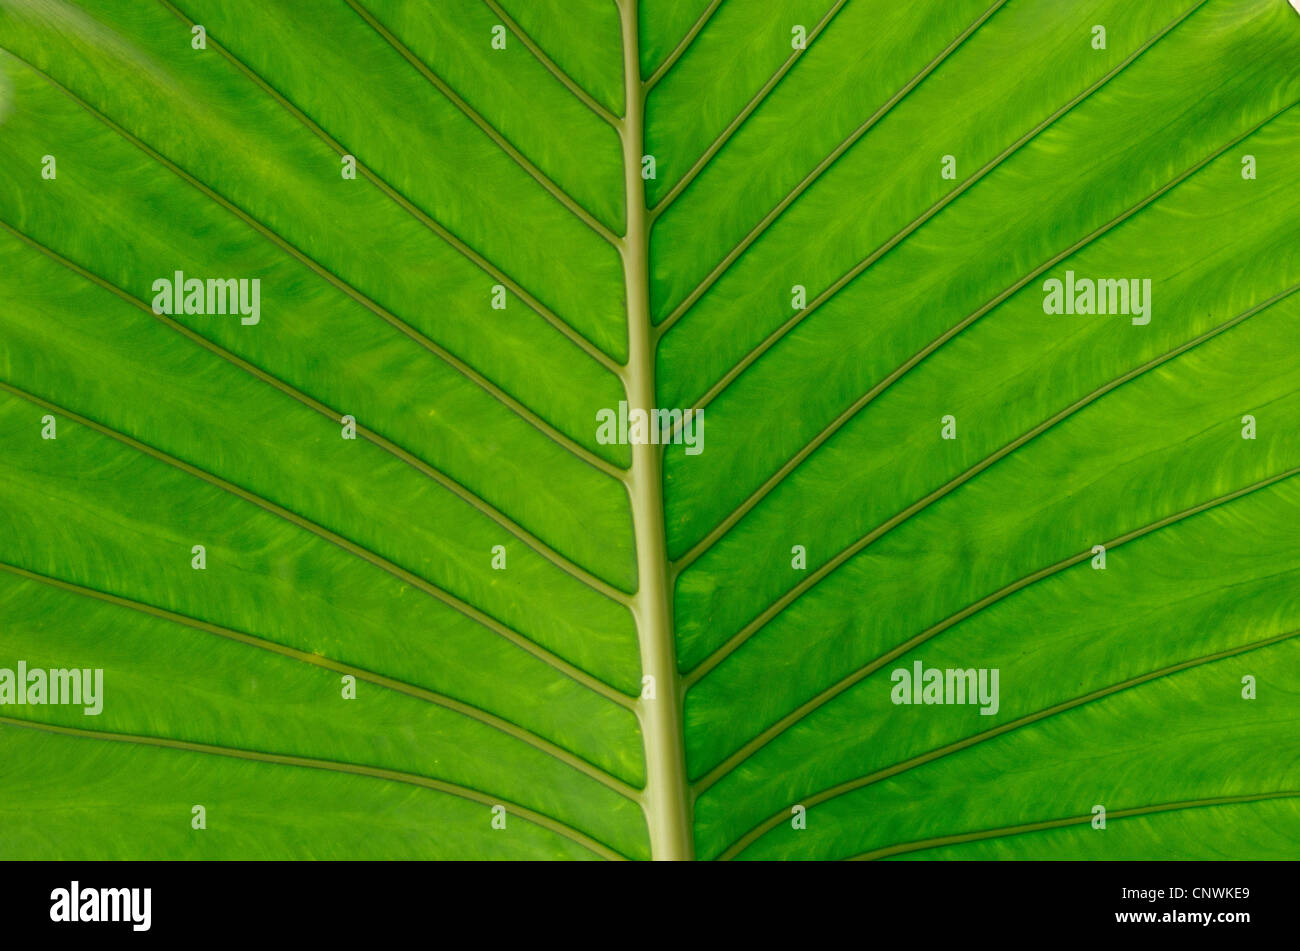 Texture of a green leaf as background - Stock Image